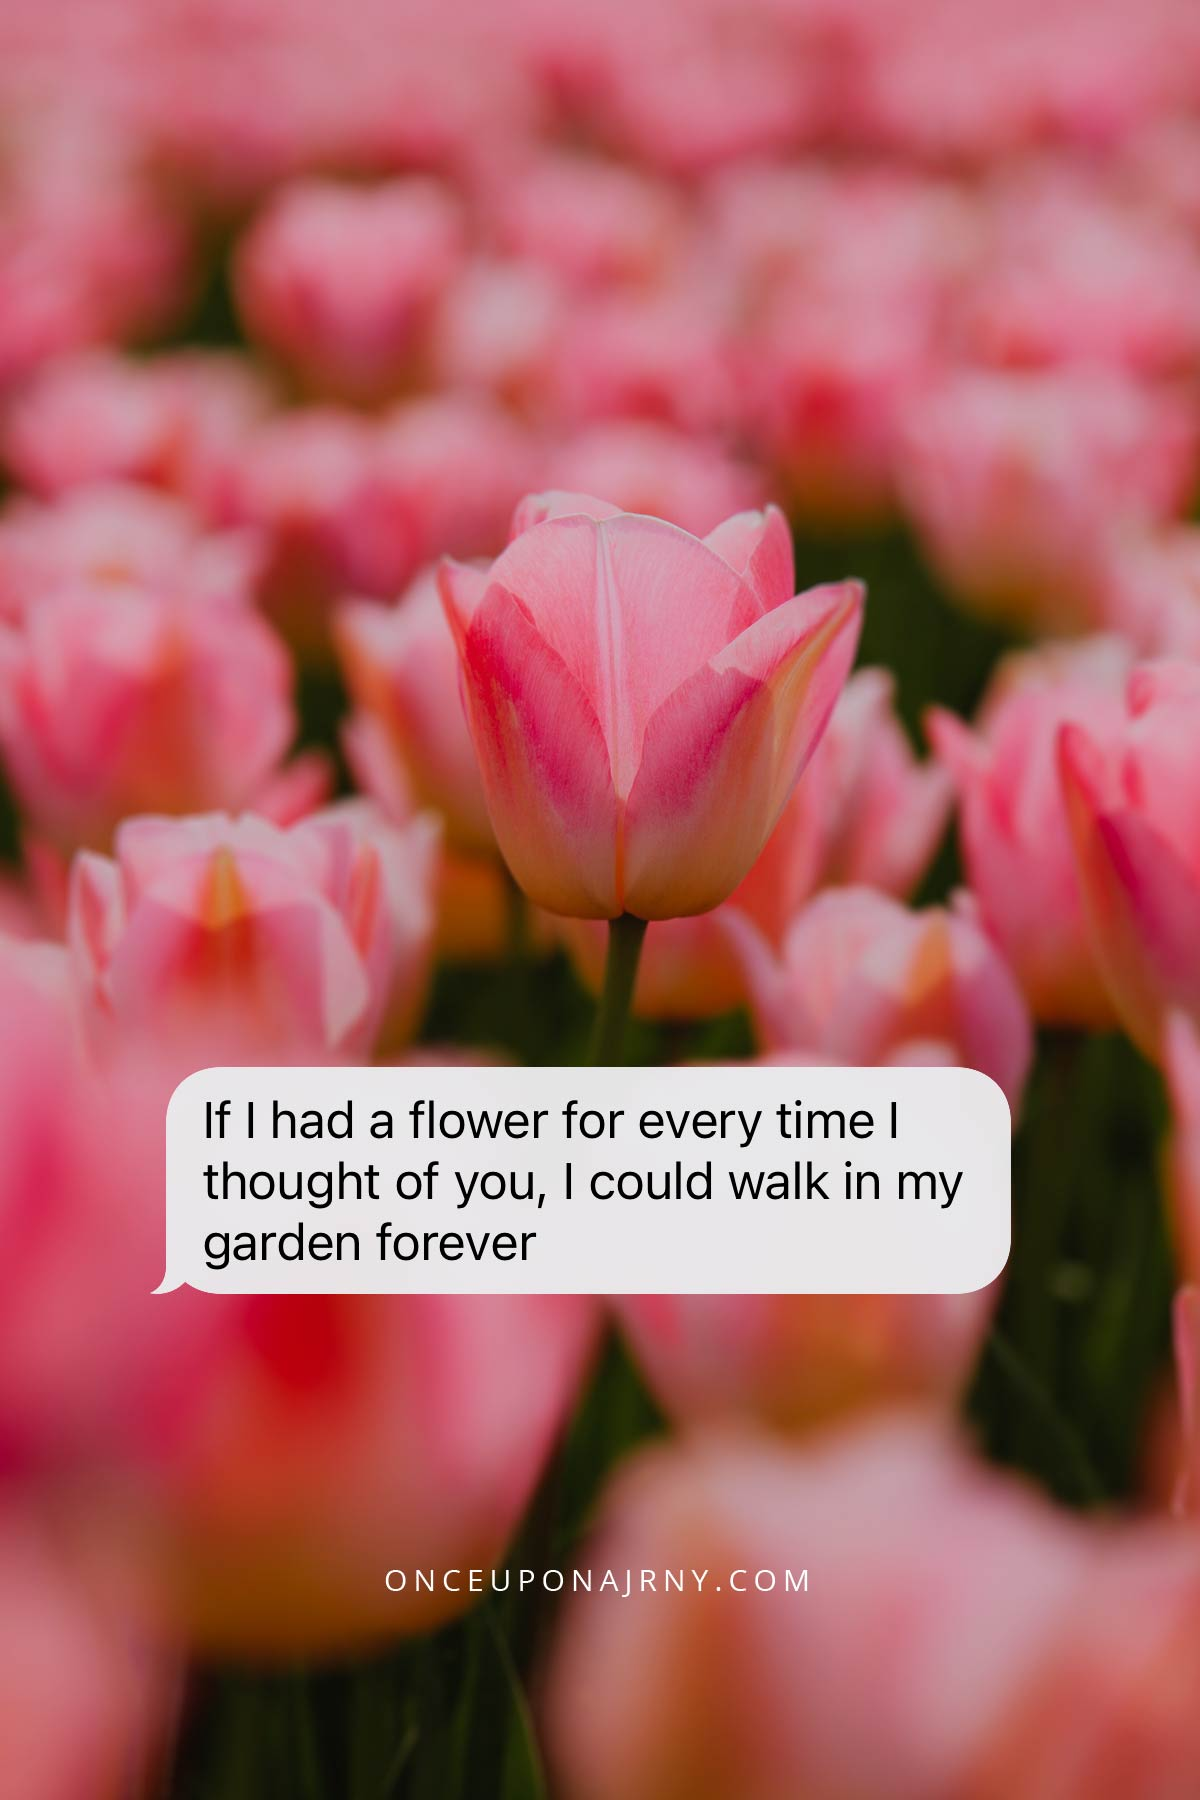 If I had a flower for every time I thought of you, I could walk in my garden forever flower lesbian quote